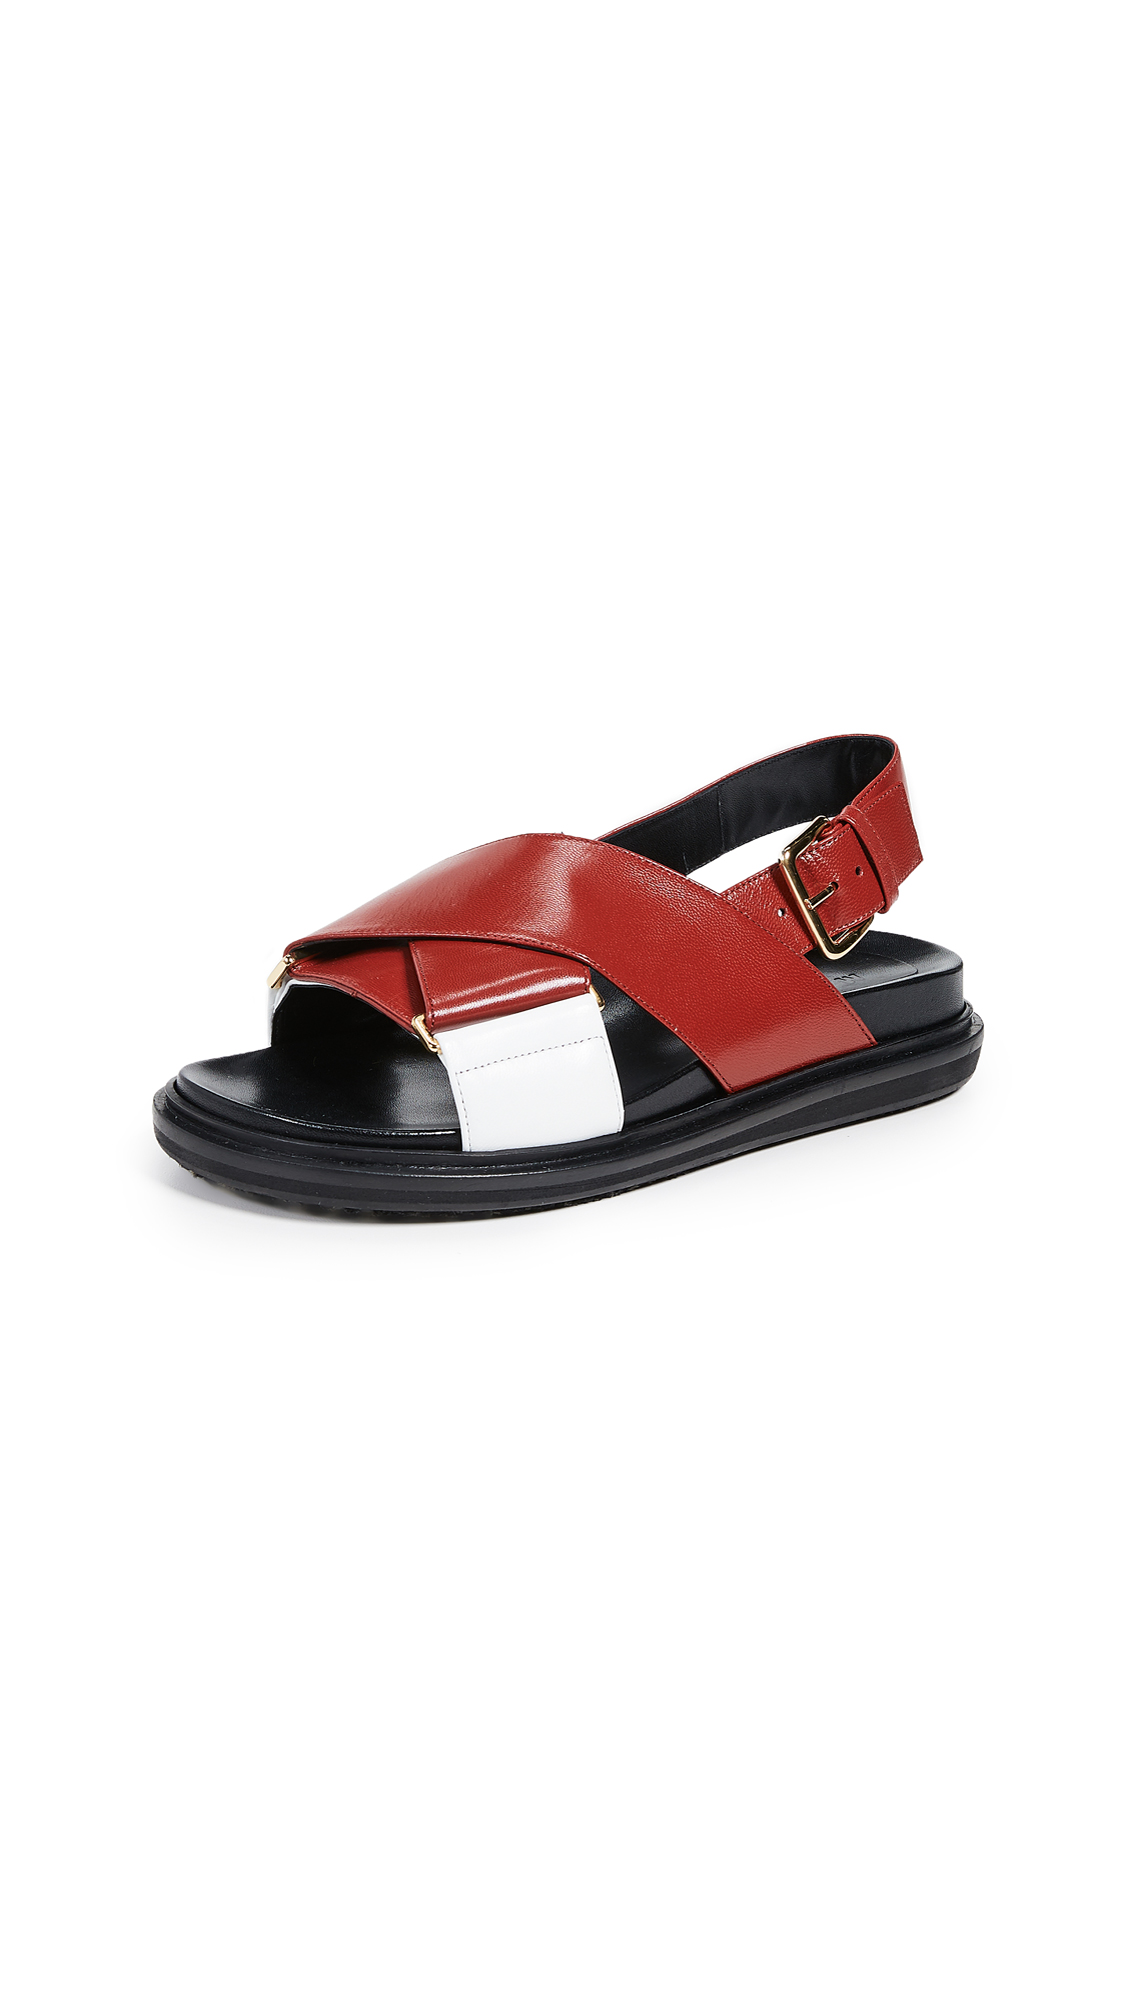 Marni Fussbett Sandals - Hot Red/Lily White